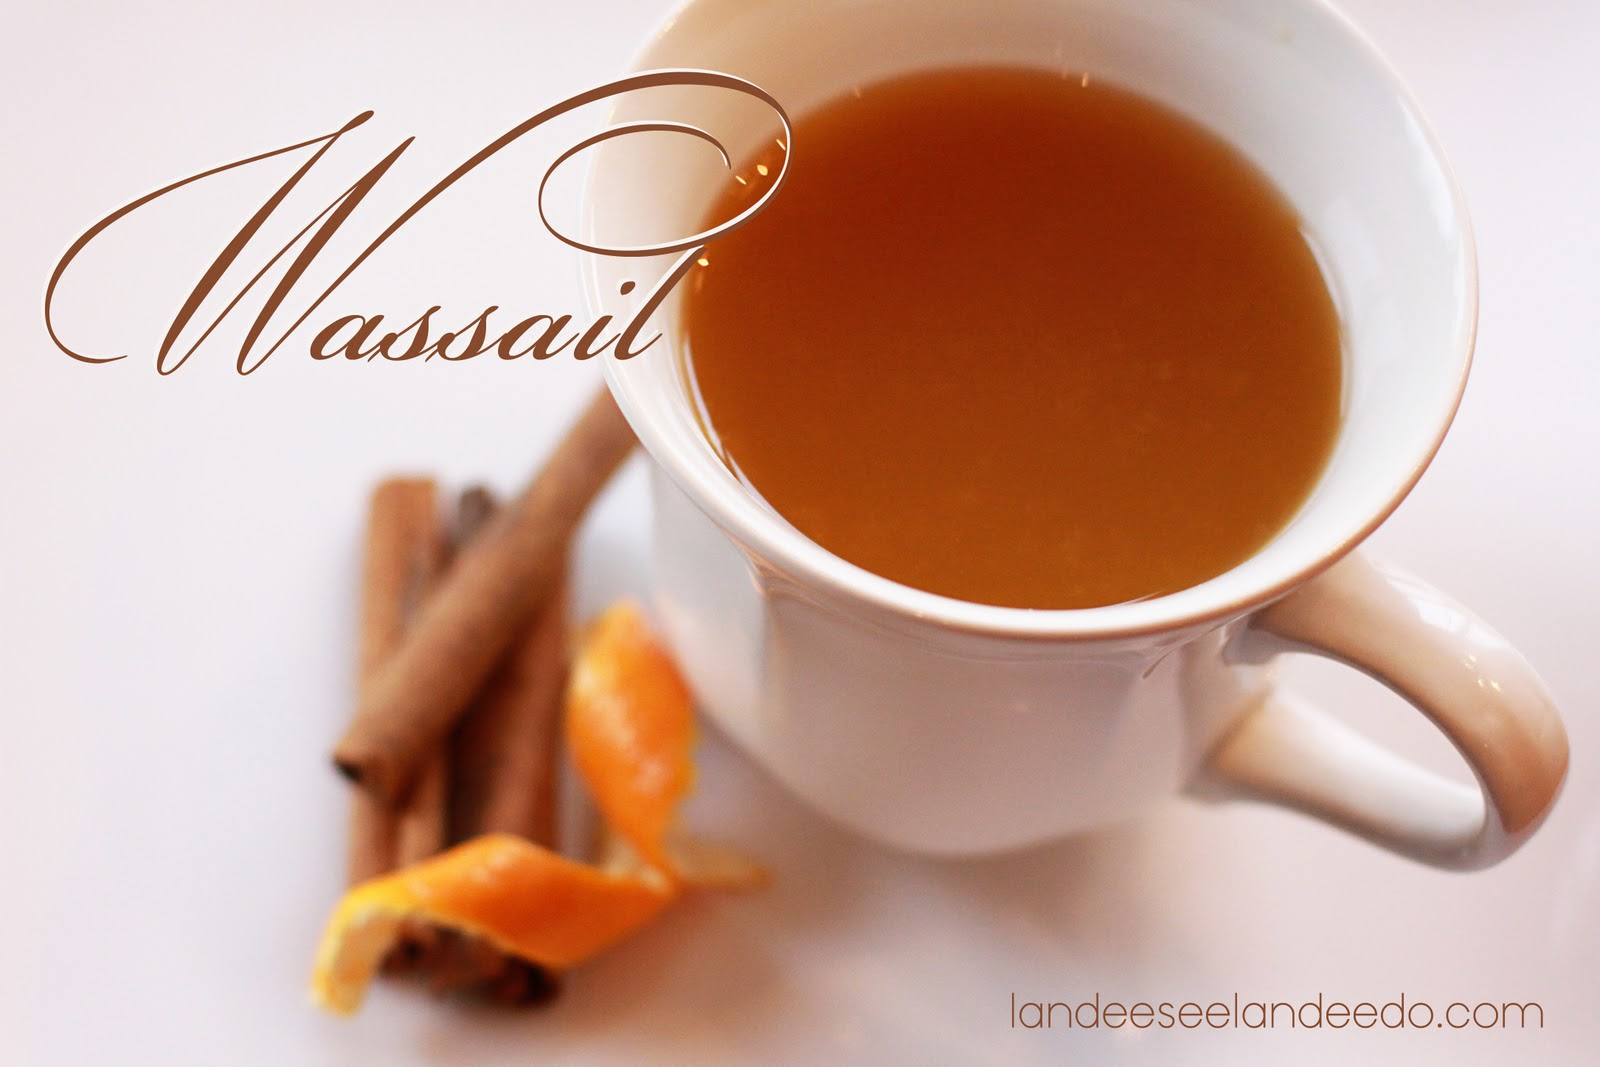 ... were wassail by stressedjenny wassailing canzone 1 wassail spiced wine